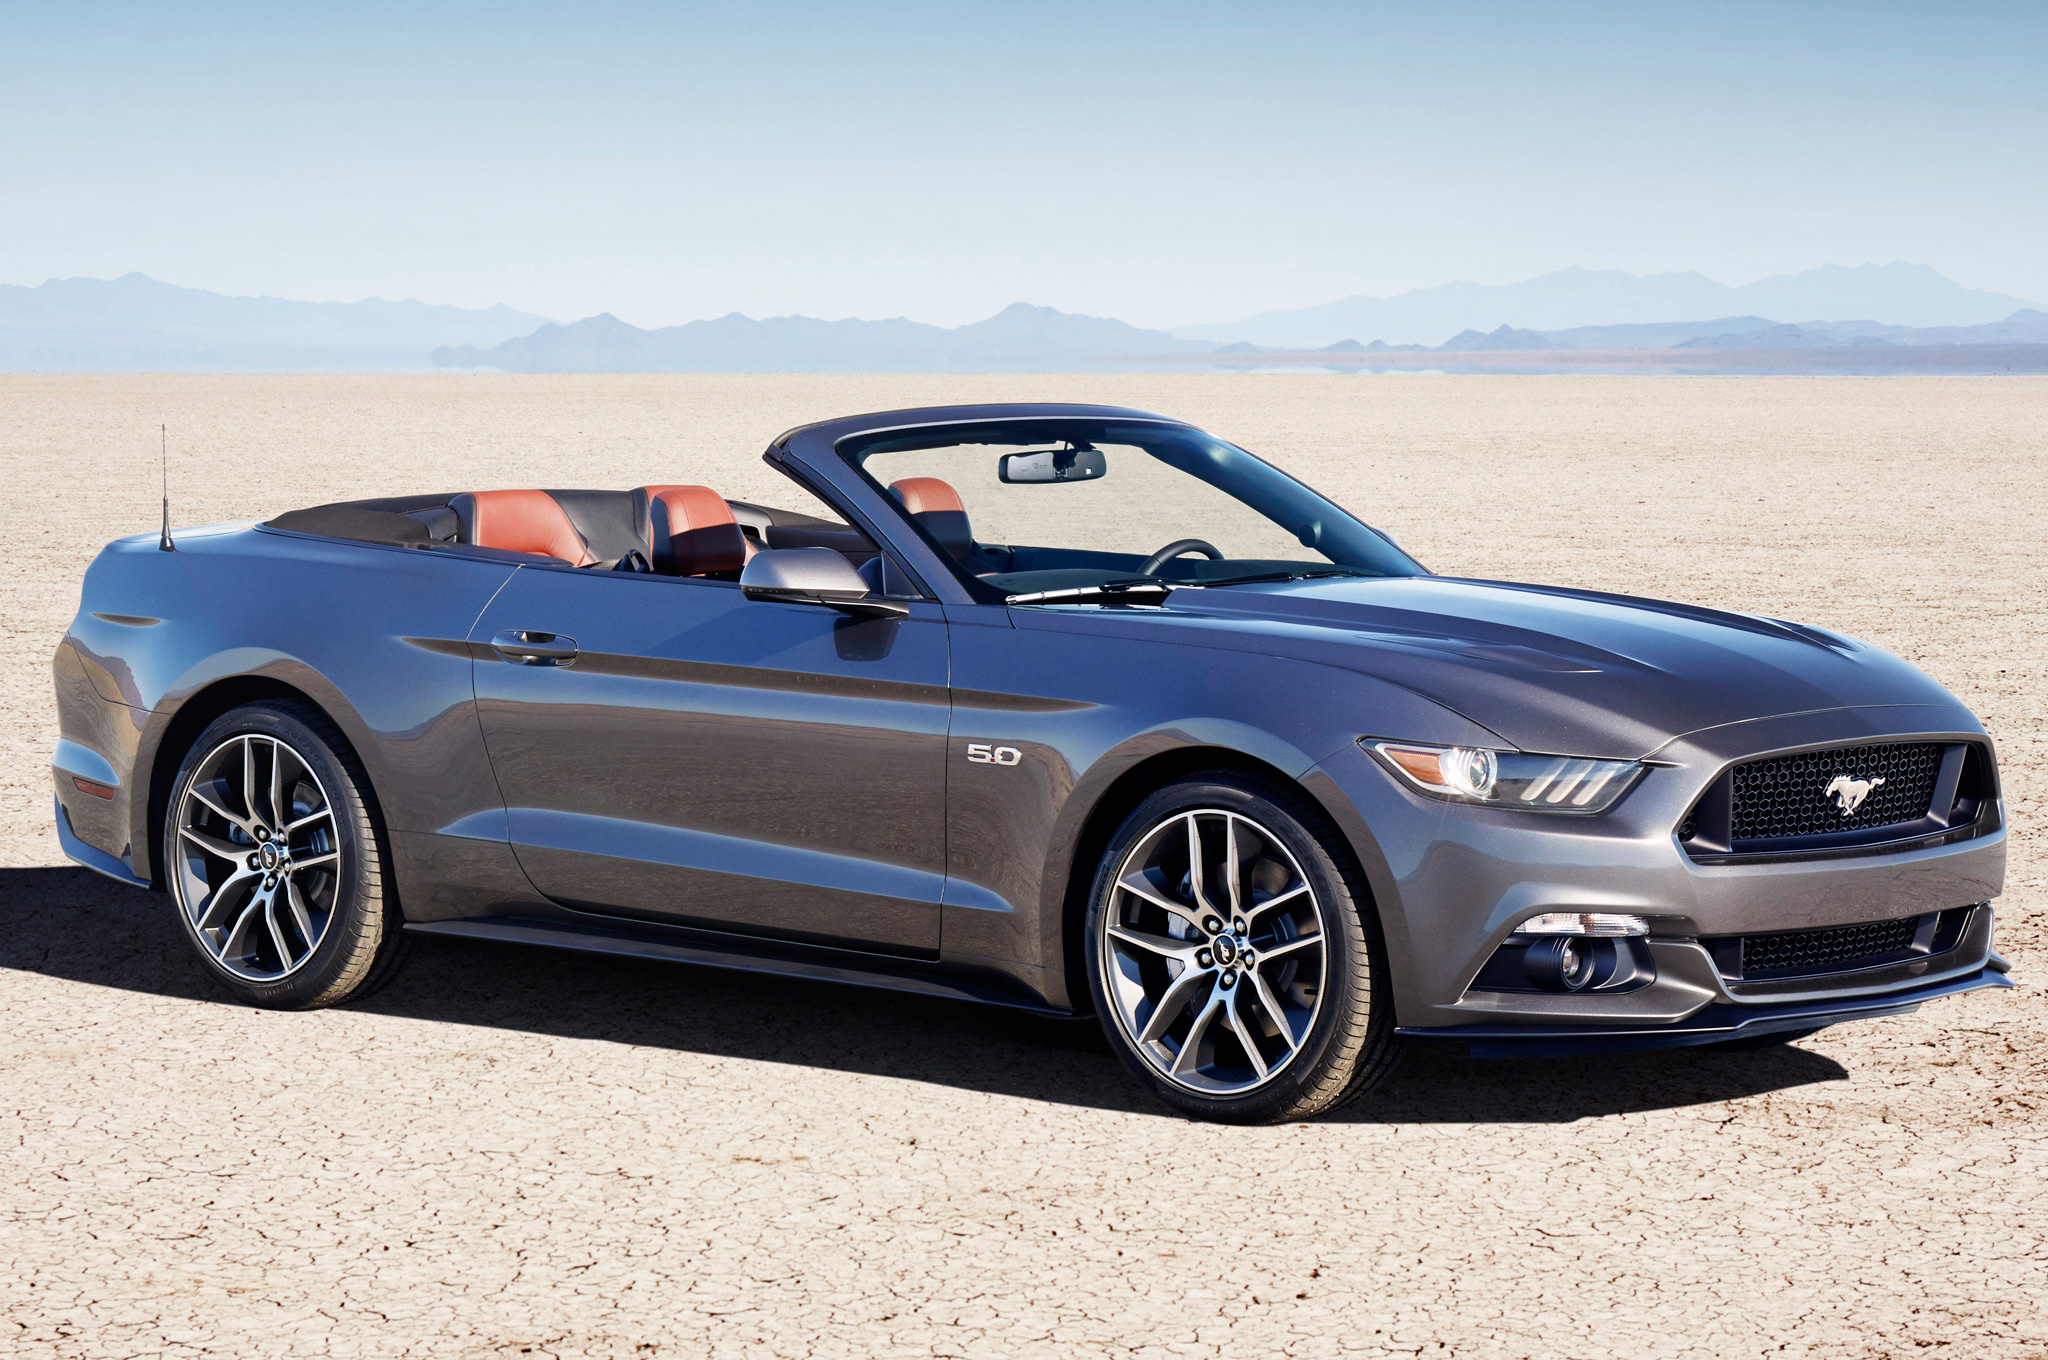 2015 Mustang Gt Pictures 2015 Ford Mustang Convertible First Look Motortrend